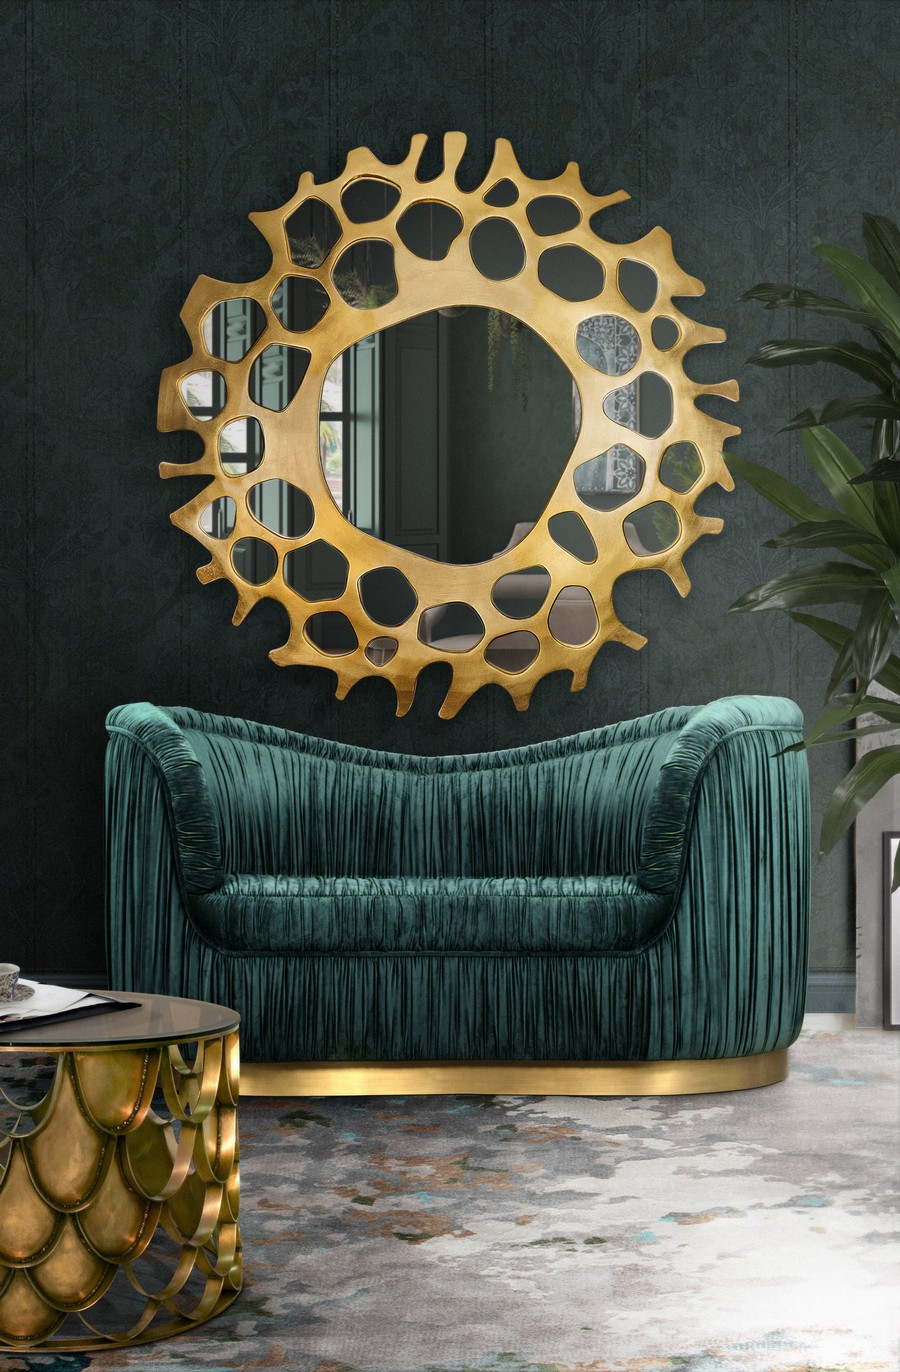 Trend Report - Incorporate Velvet Into Your Home Decor In A Stylish Way trend report Trend Report – Incorporate Velvet Into Your Home Decor In A Stylish Way Trend Report Incorporate Velvet Into Your Home Decor In A Stylish Way 8